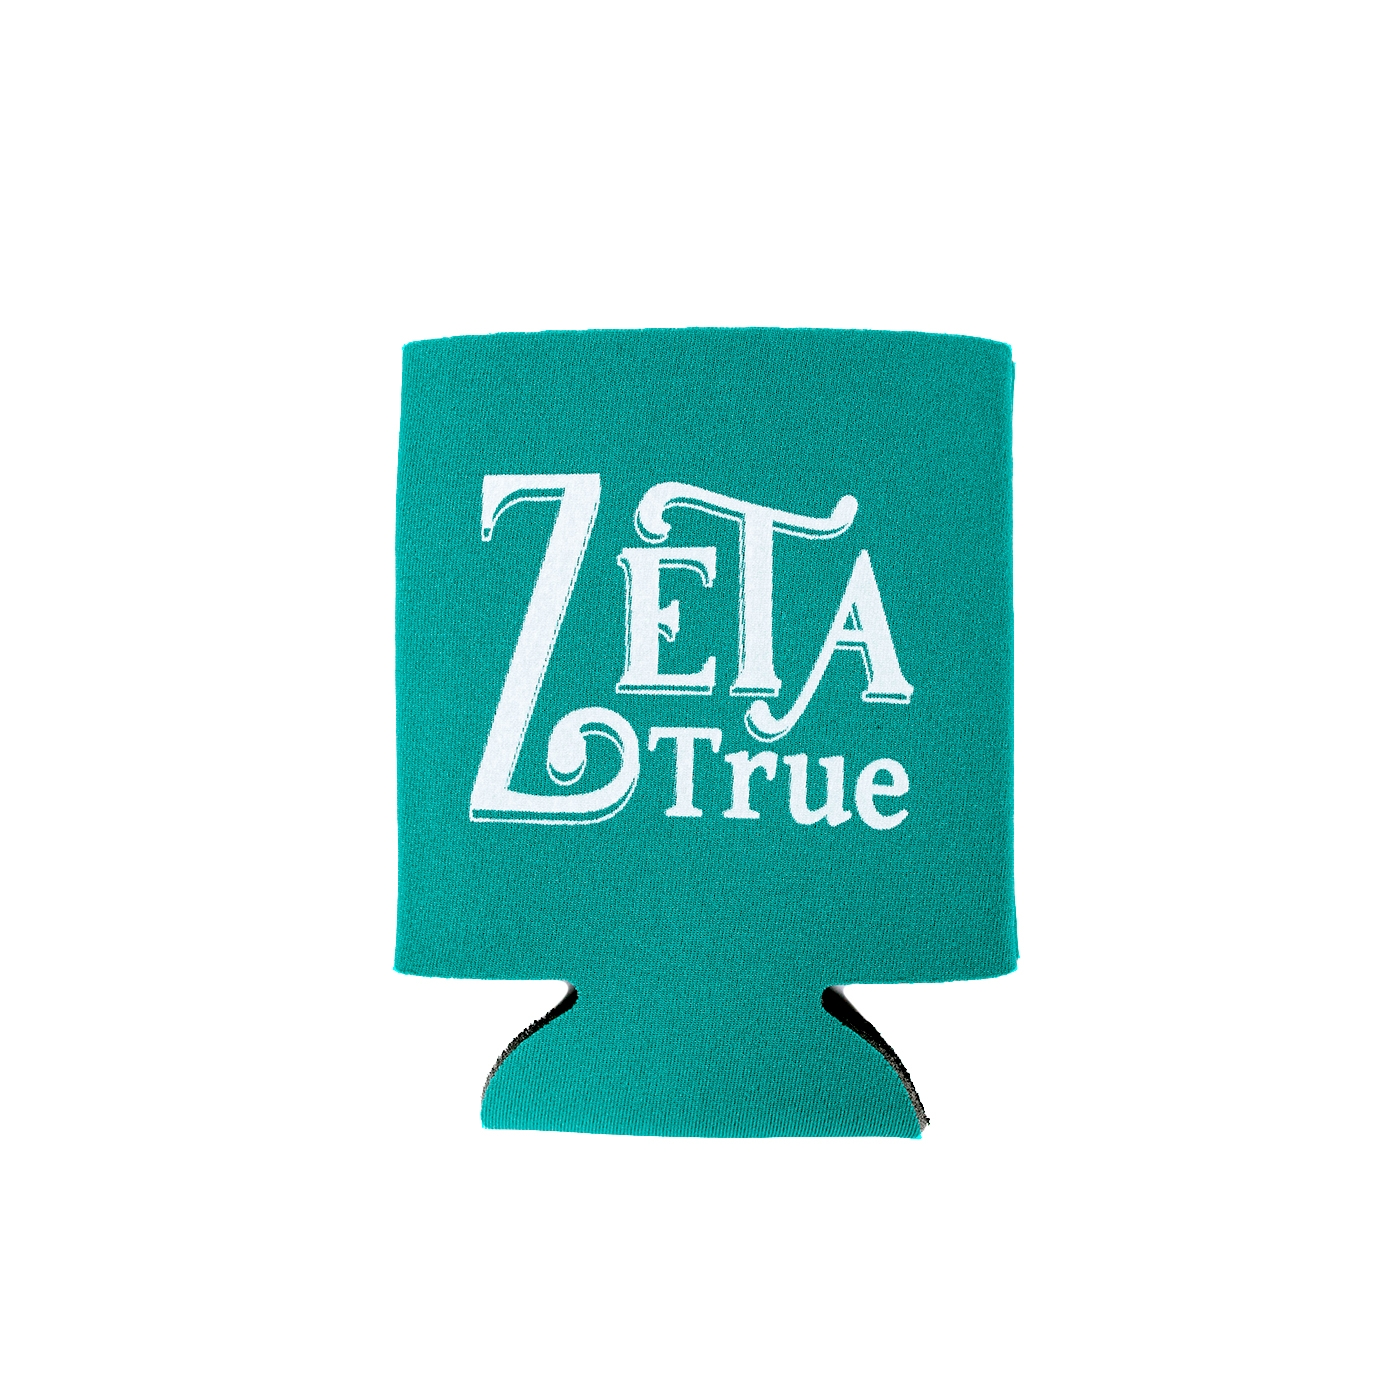 Zeta True Koozie